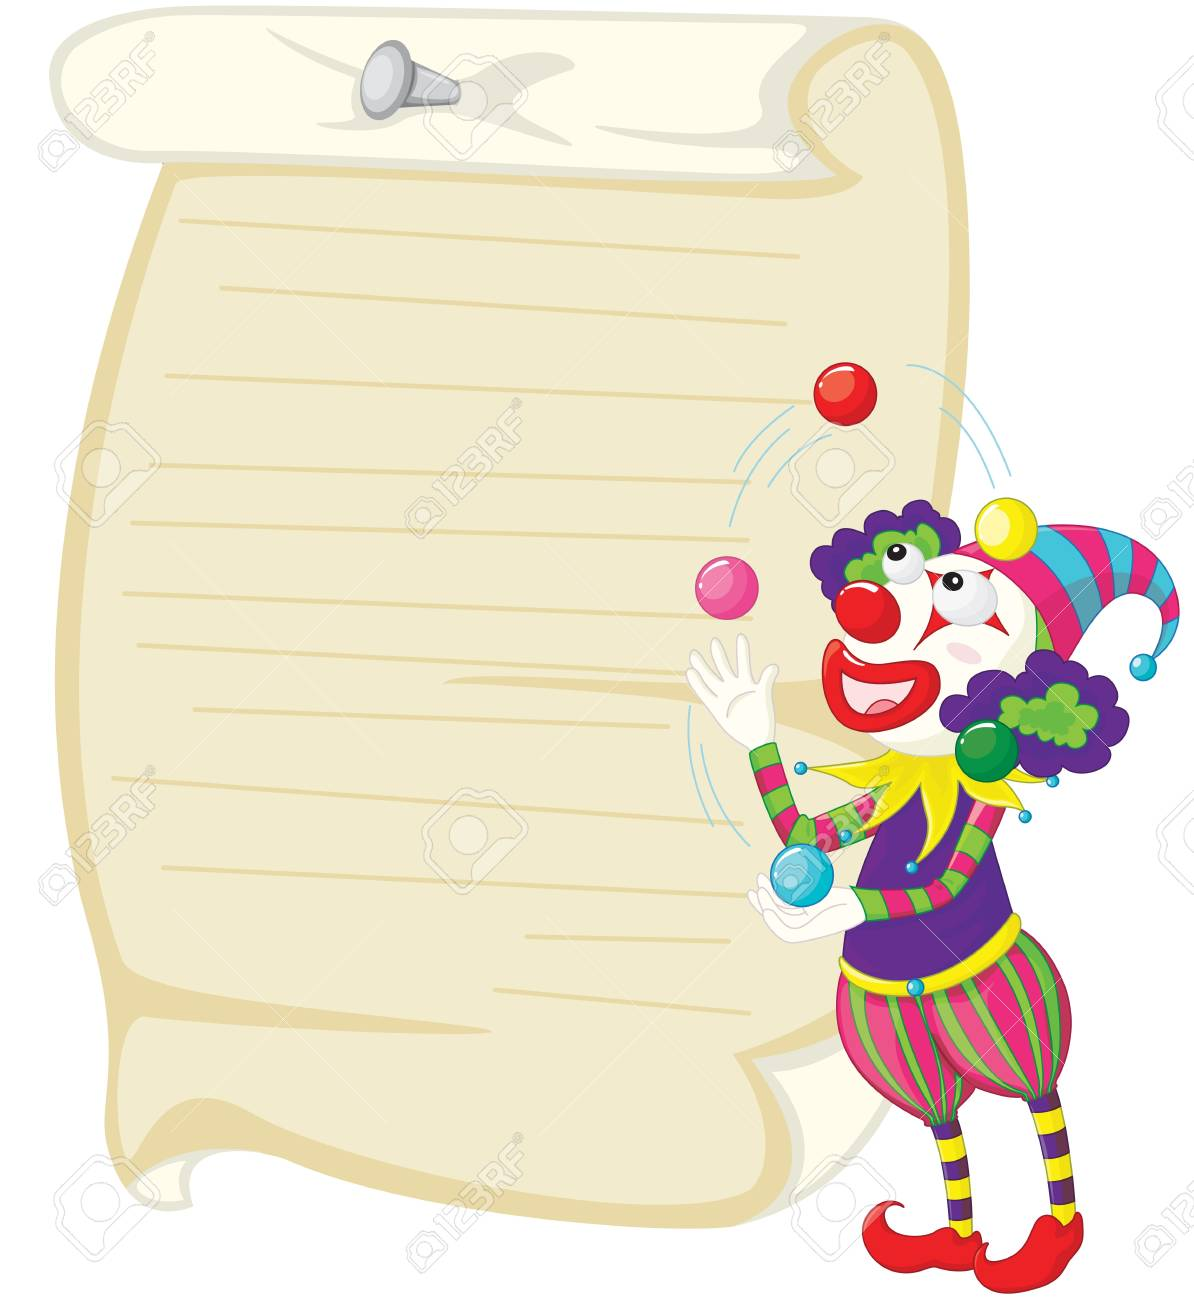 Illustration of a clown and paper Stock Vector - 13189322